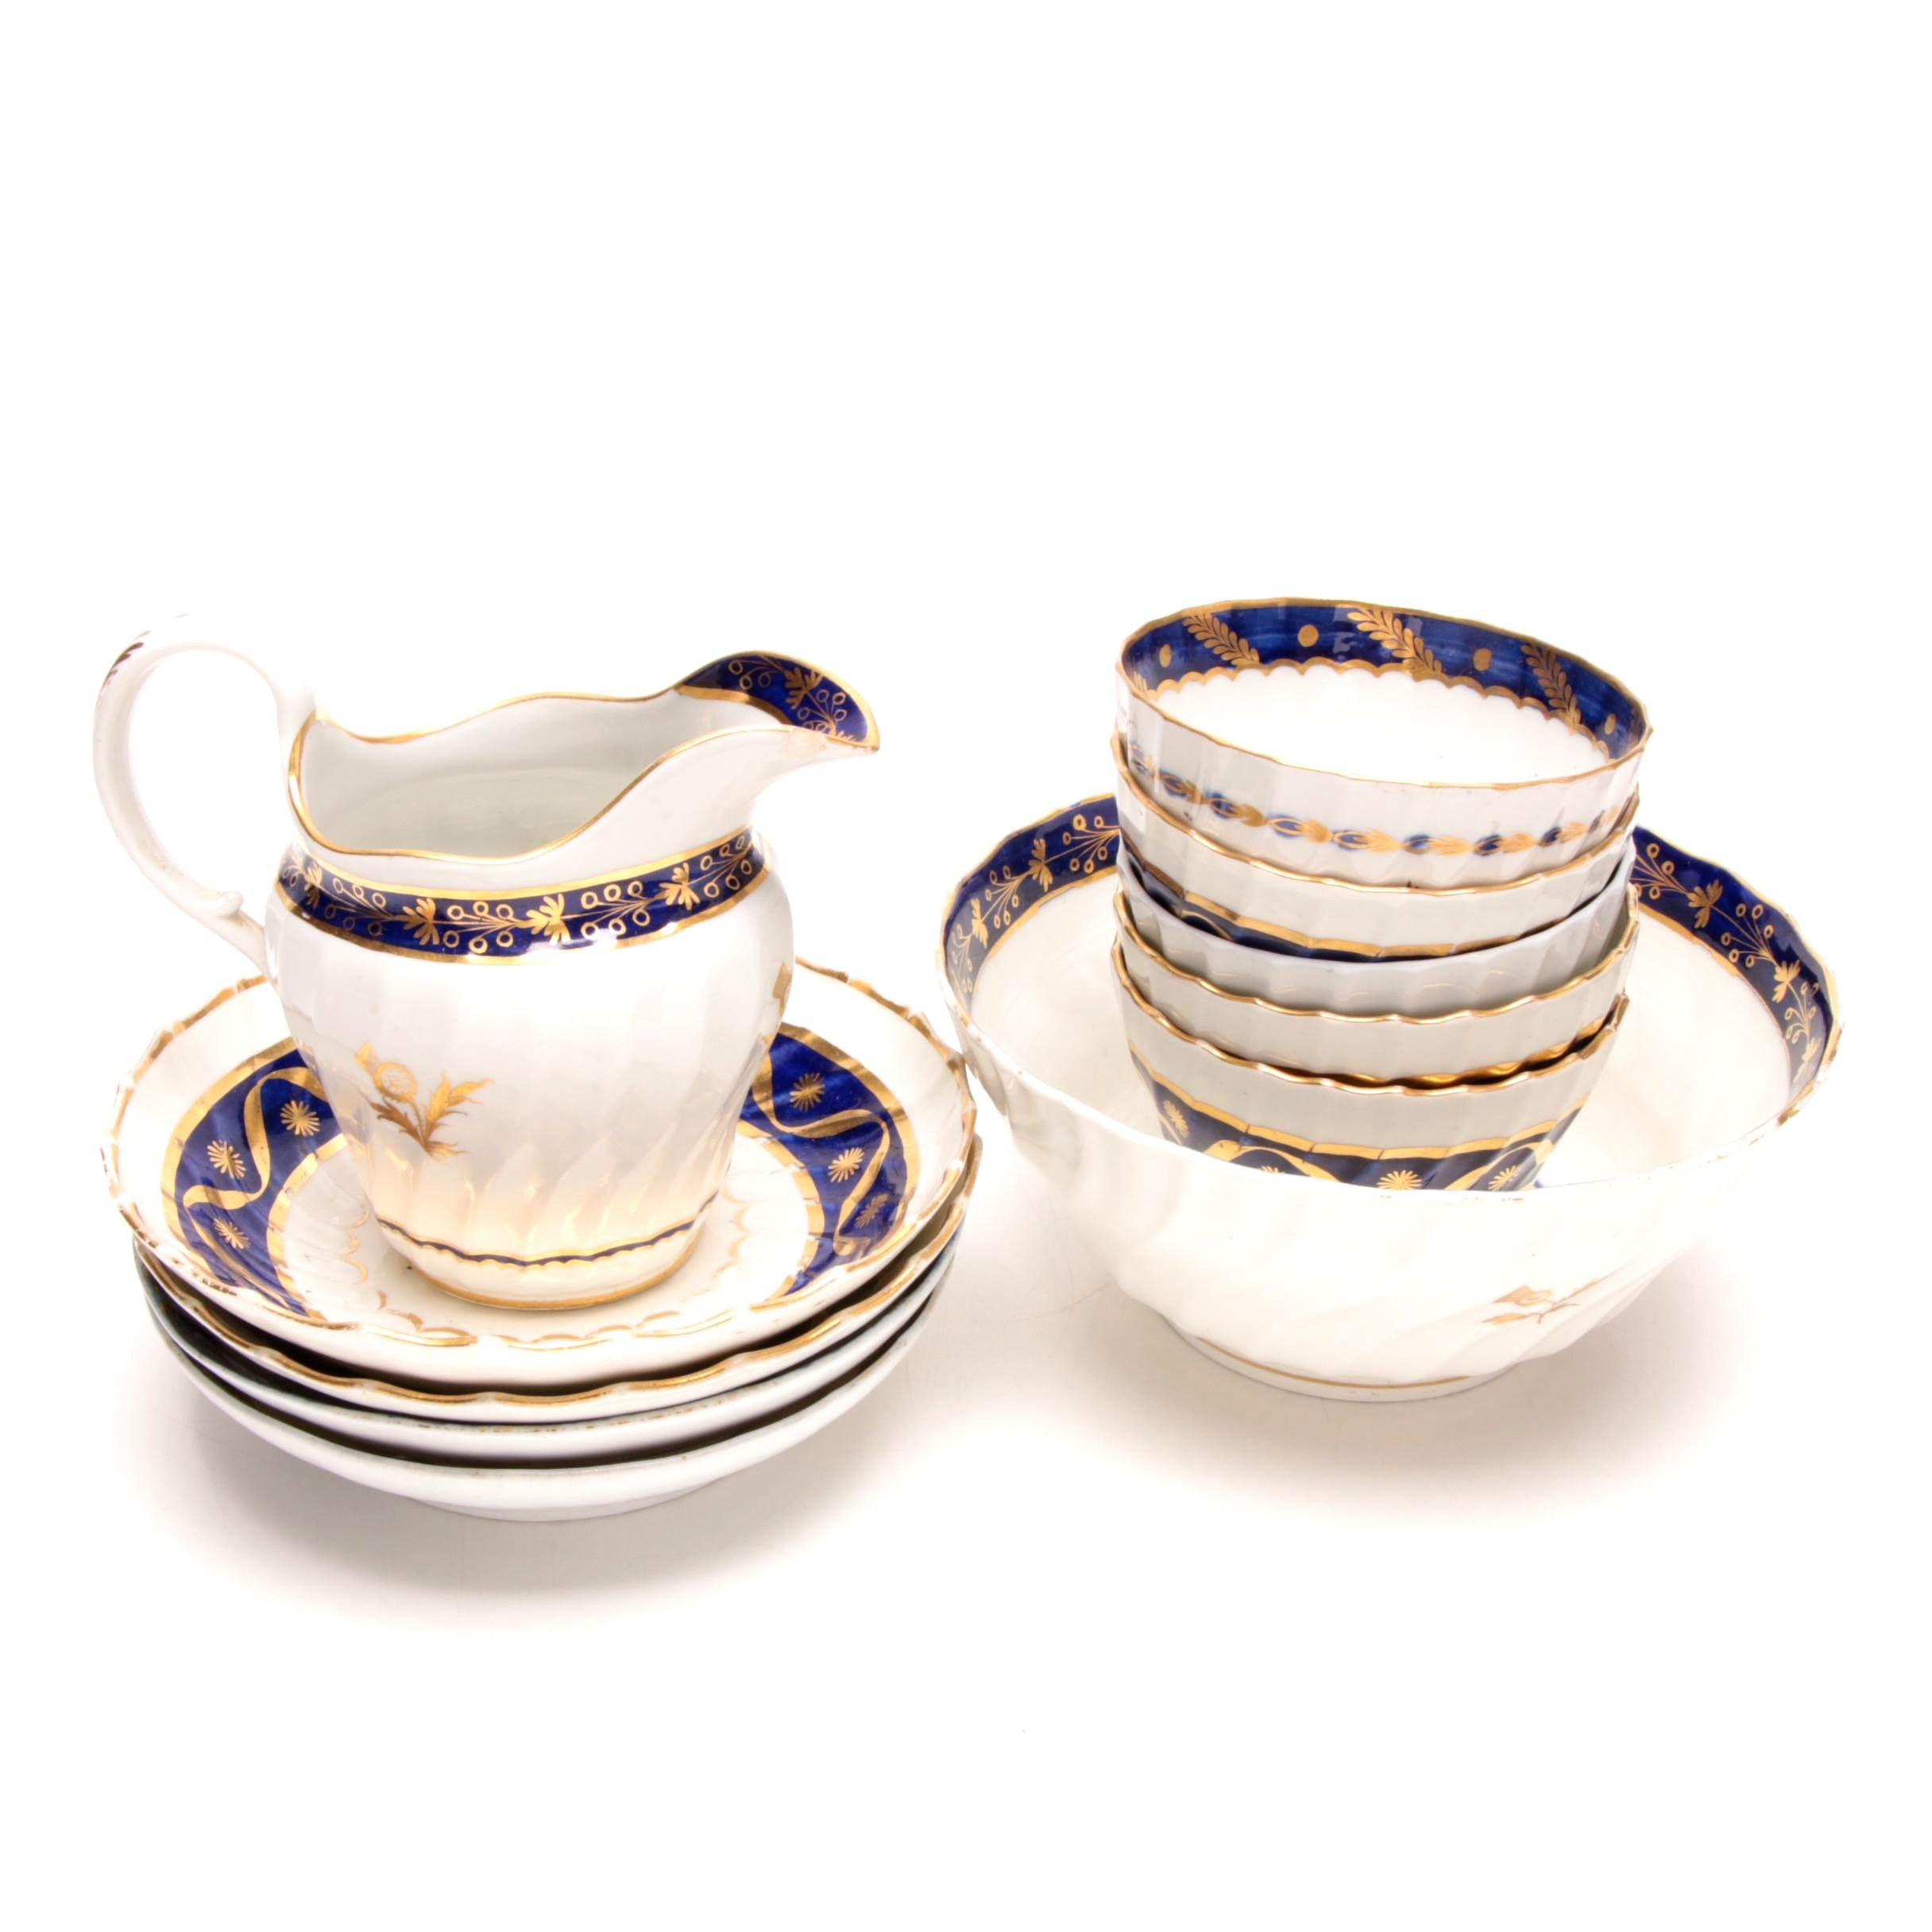 Blue and Gilt Porcelain Tableware